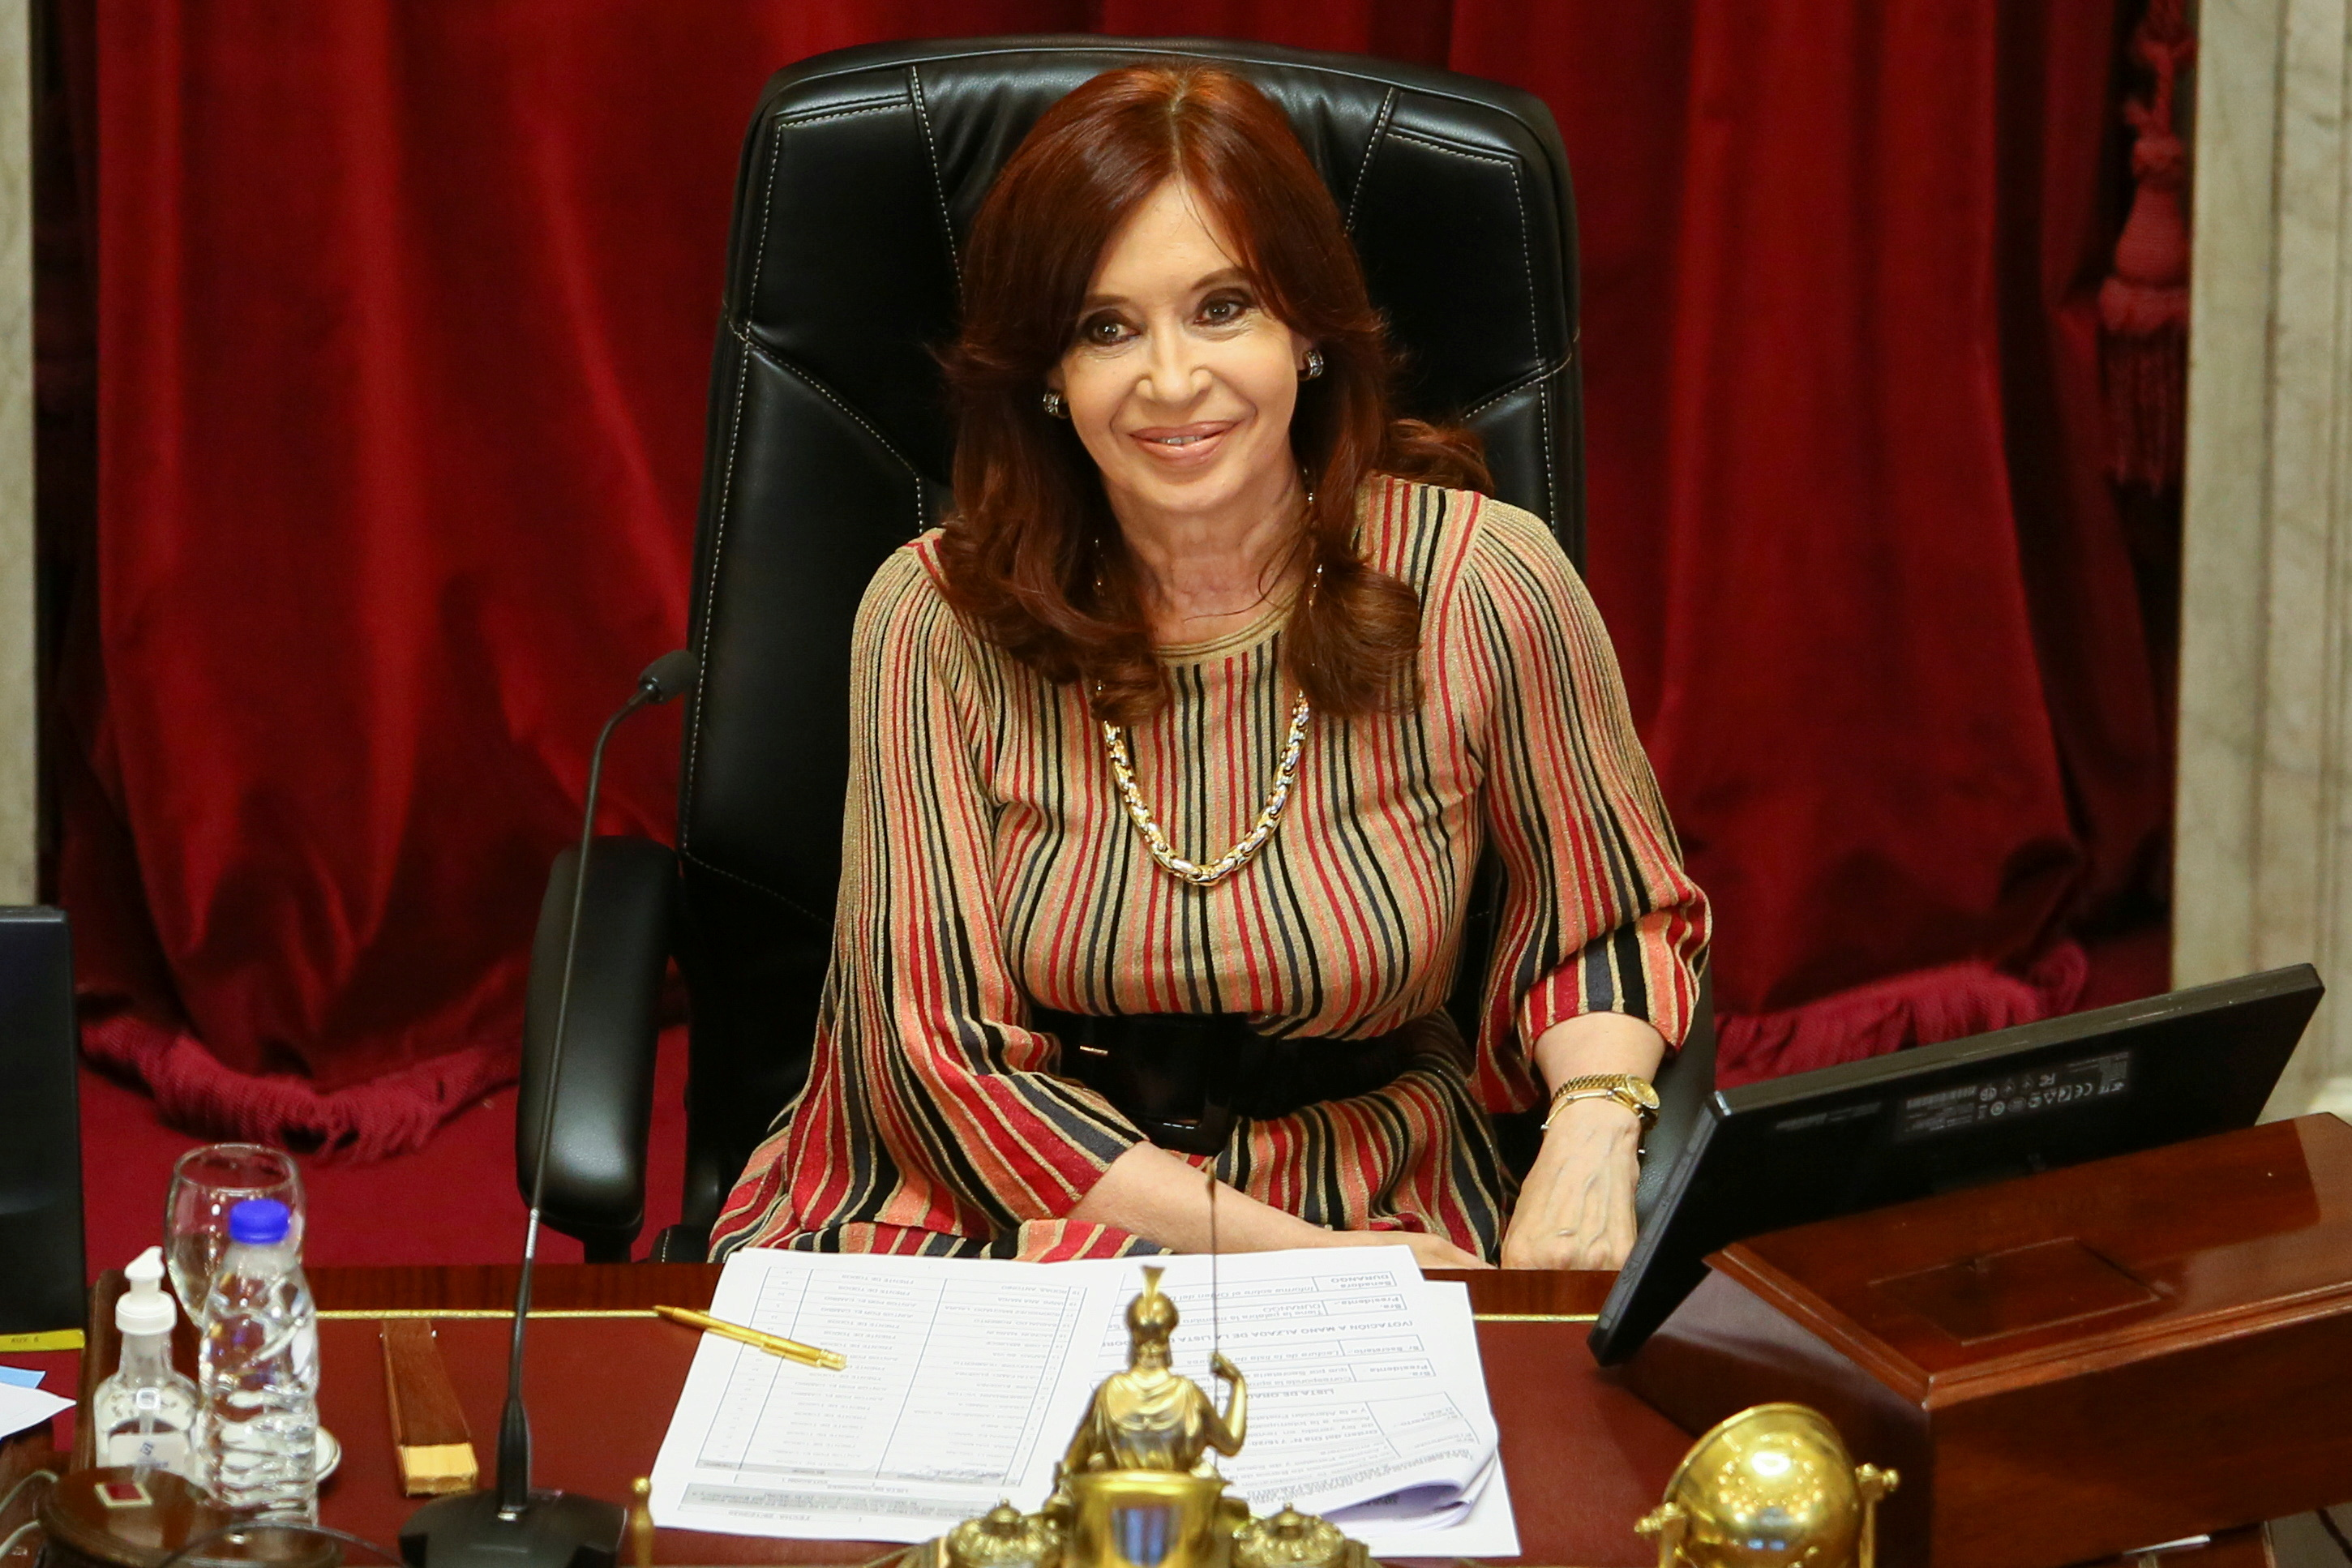 Argentine Vice-President and President of the Senate, Cristina Fernandez de Kirchner looks on as senators debate an abortion bill in Buenos Aires, Argentina, December 29, 2020. REUTERS/Matias Baglietto/File Photo